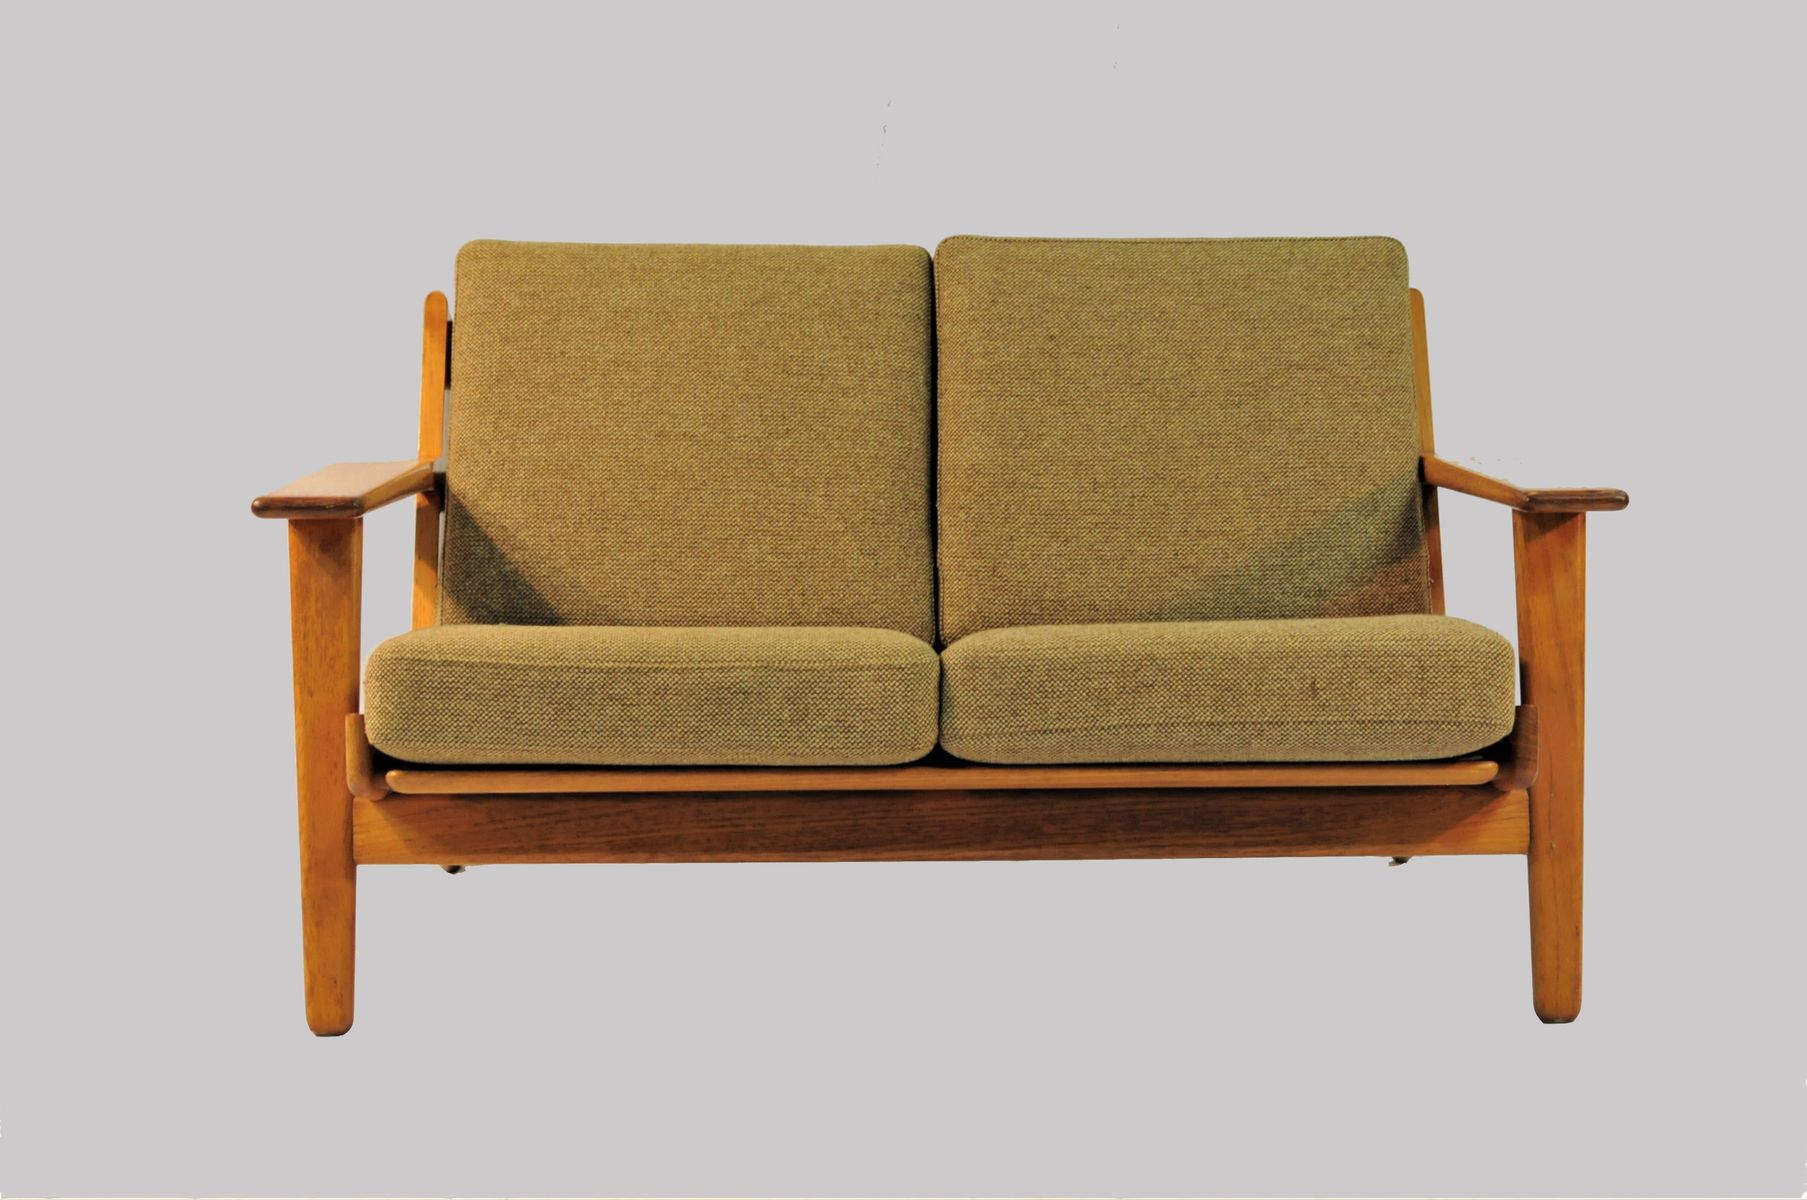 modell ge 290 2 sofa von hans j wegner f r getama 1950er. Black Bedroom Furniture Sets. Home Design Ideas